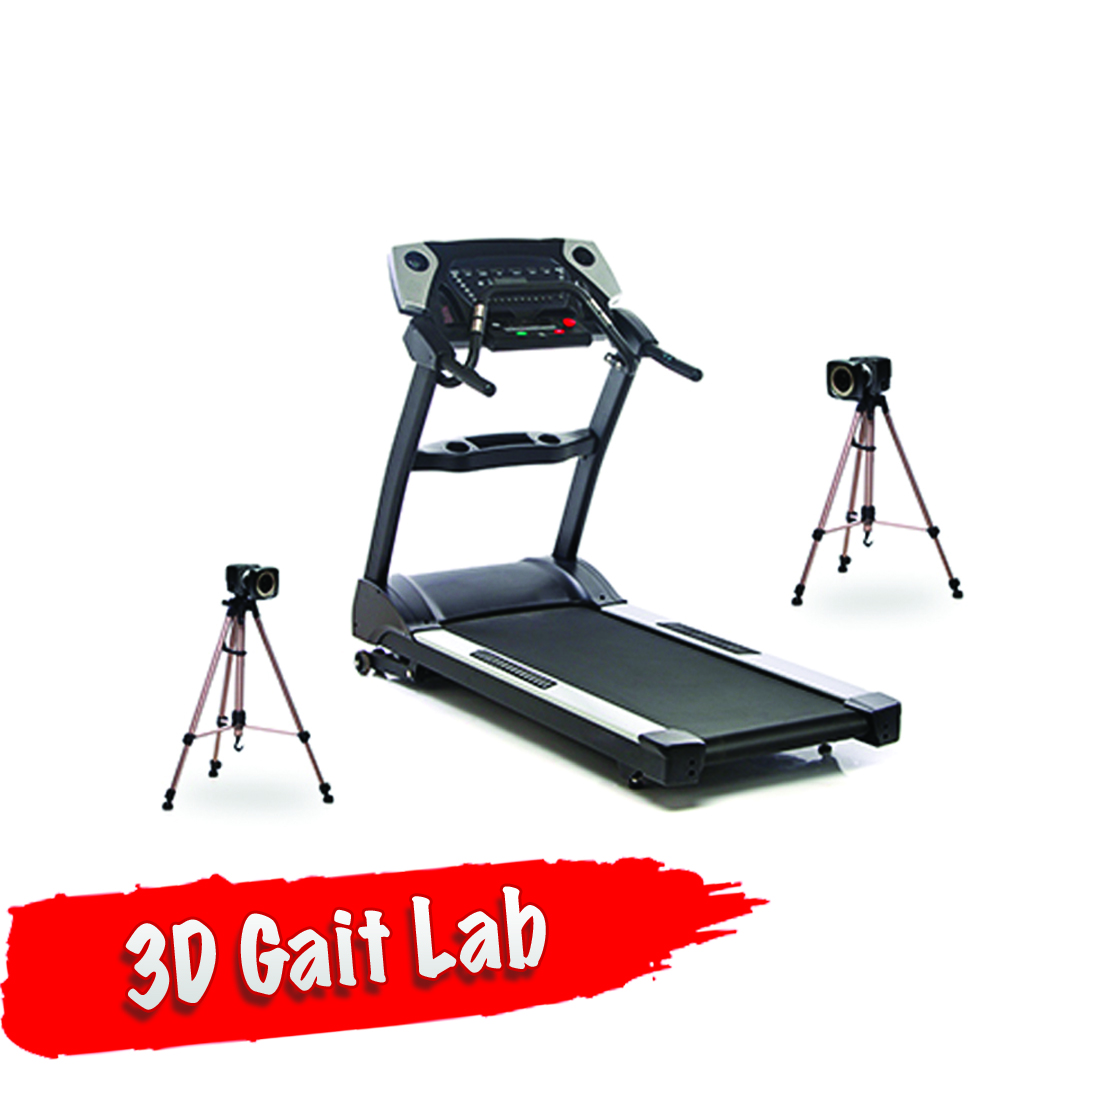 3D Gait Lab - Neuro Rehab Physiotherapy